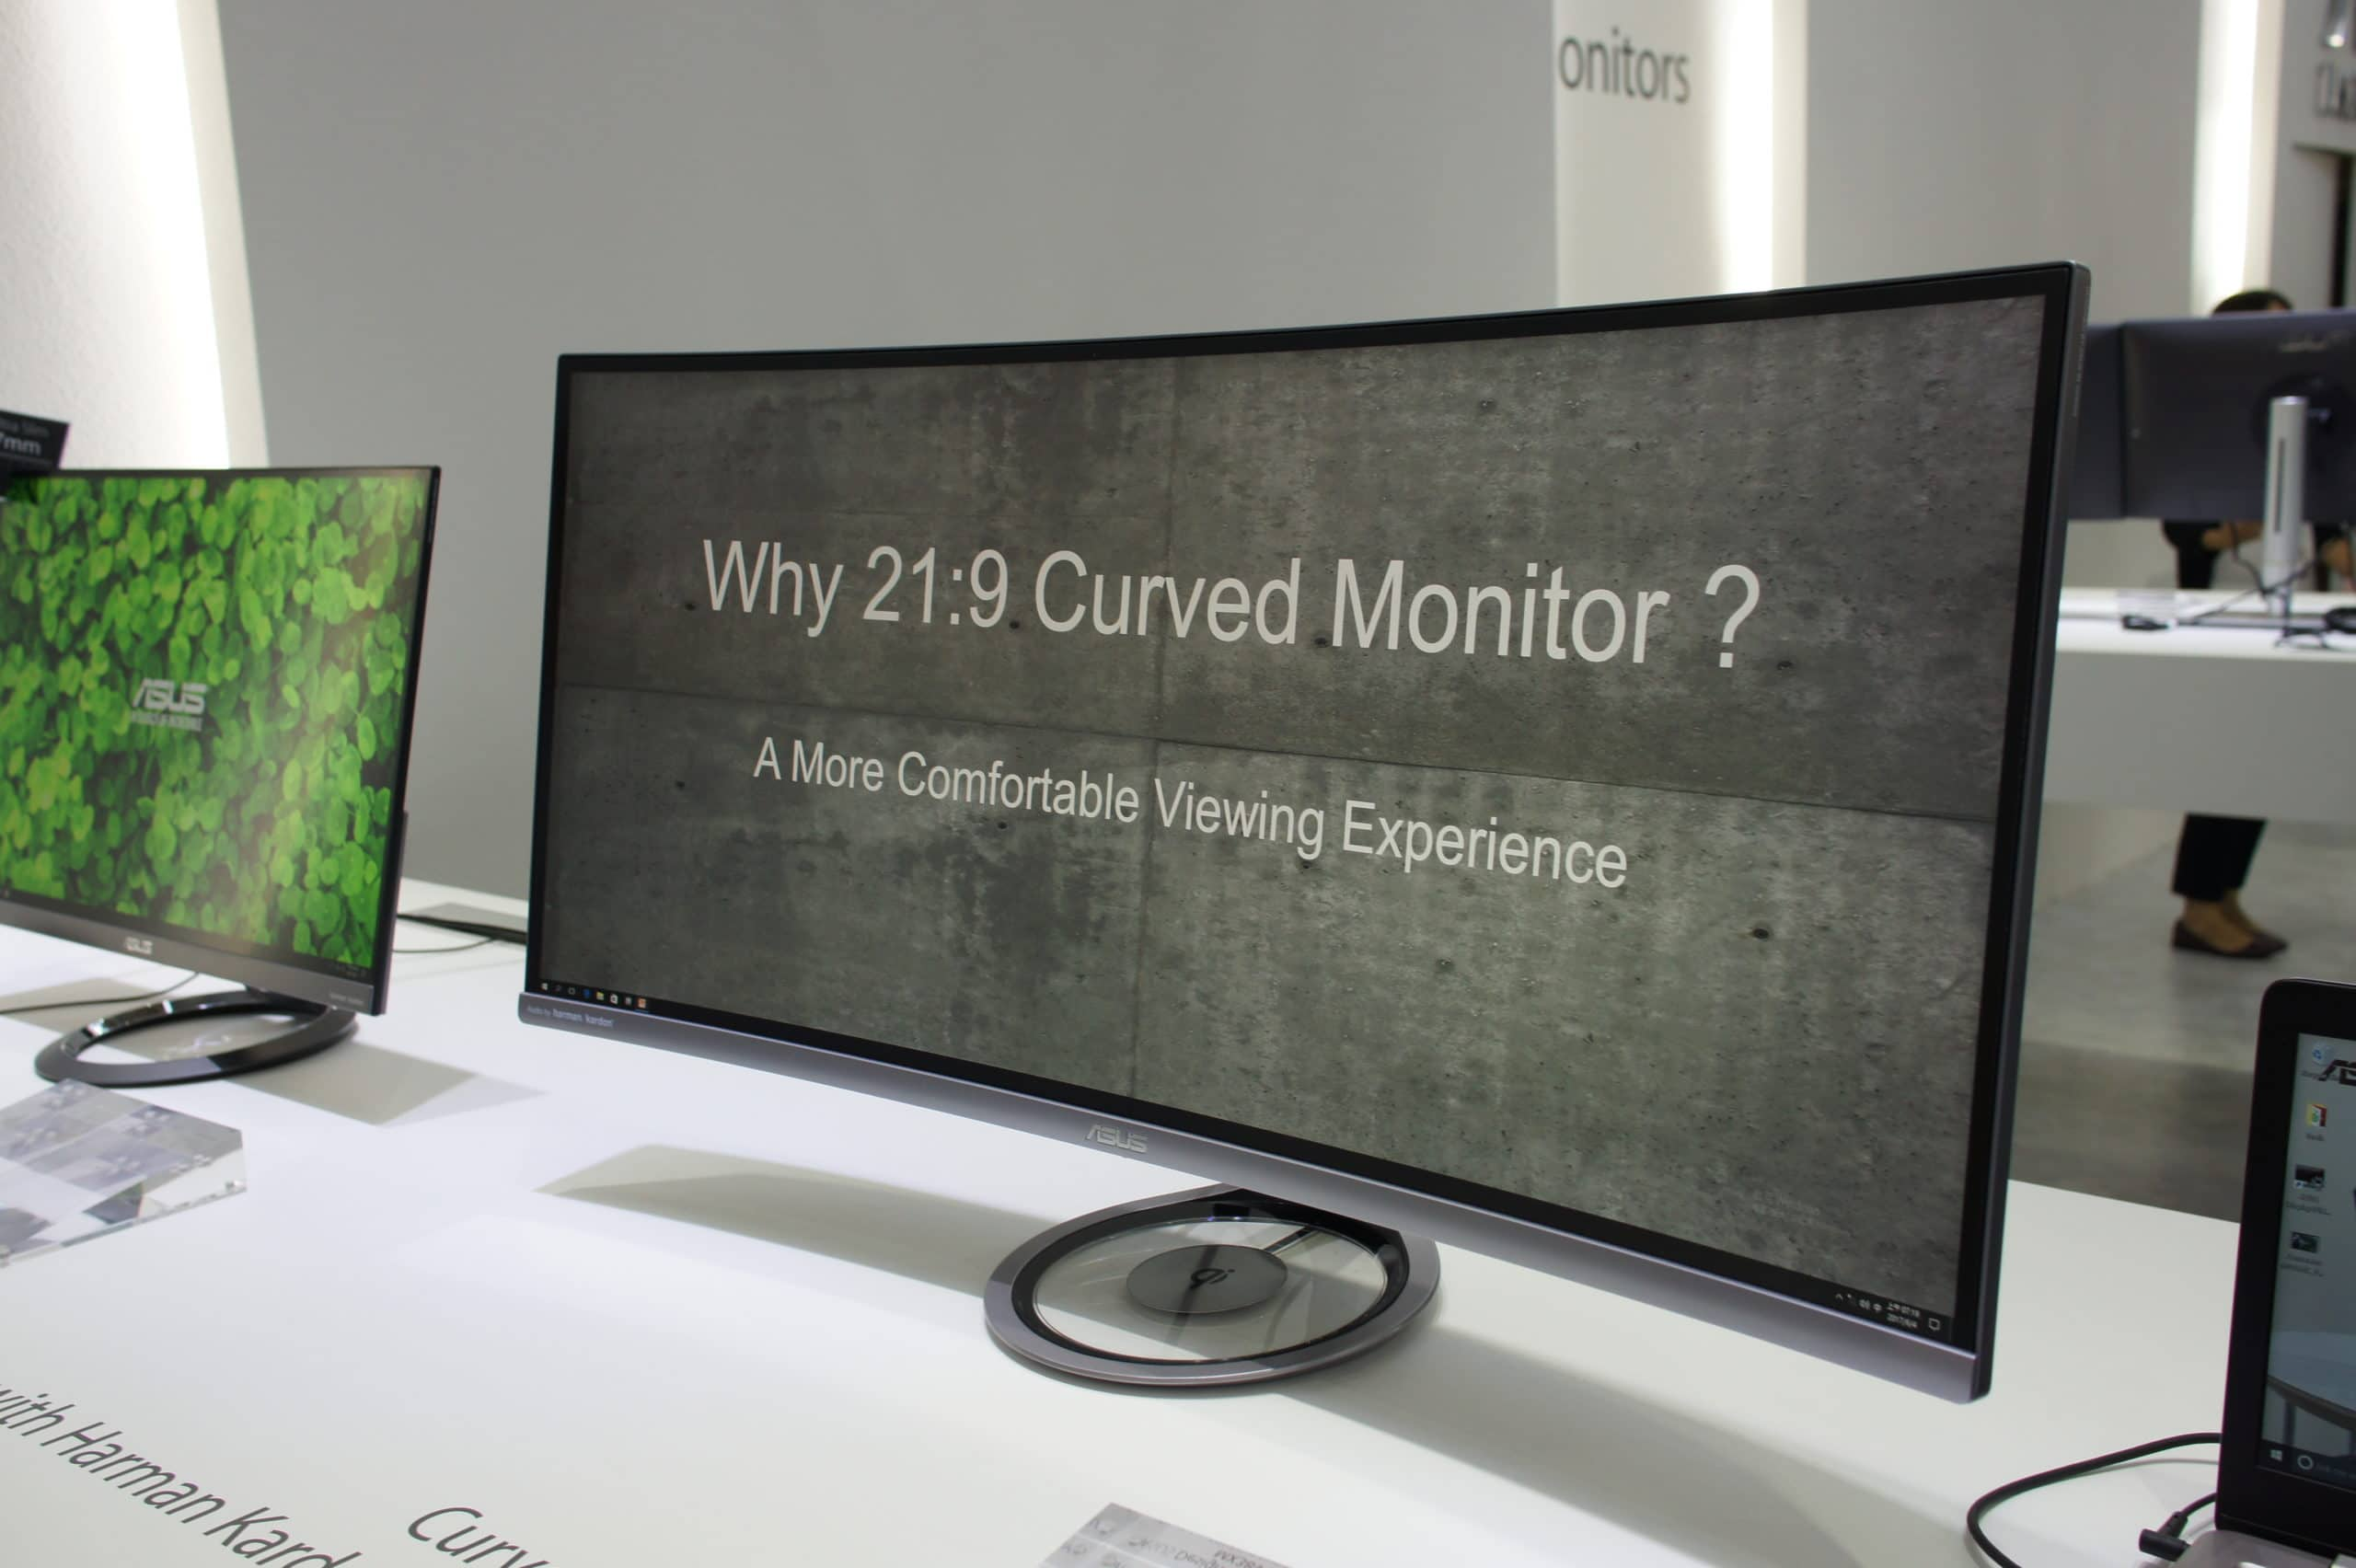 a question on the screen